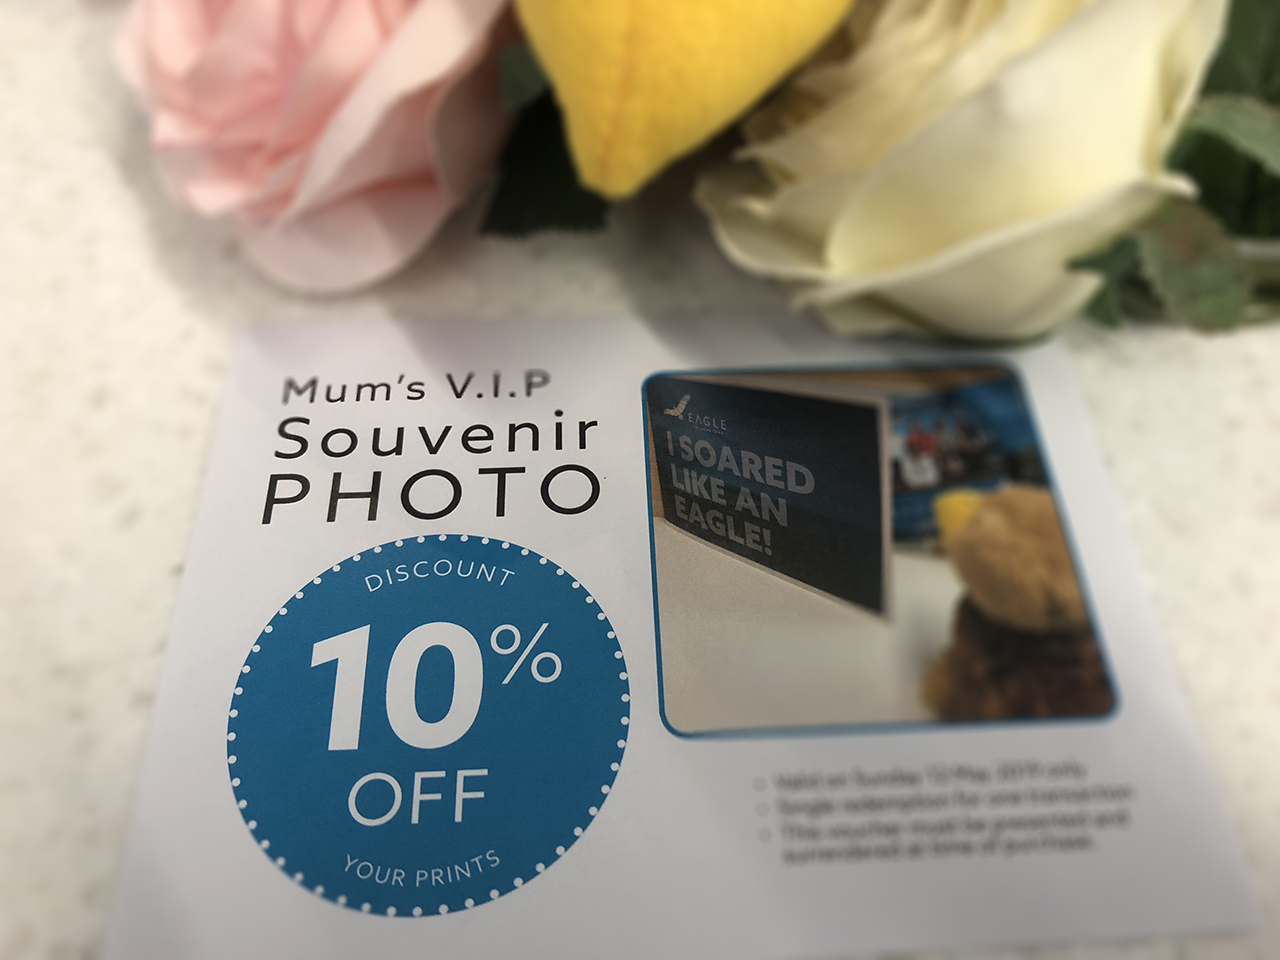 A discount off any souvenir photos taken on Mother's Day